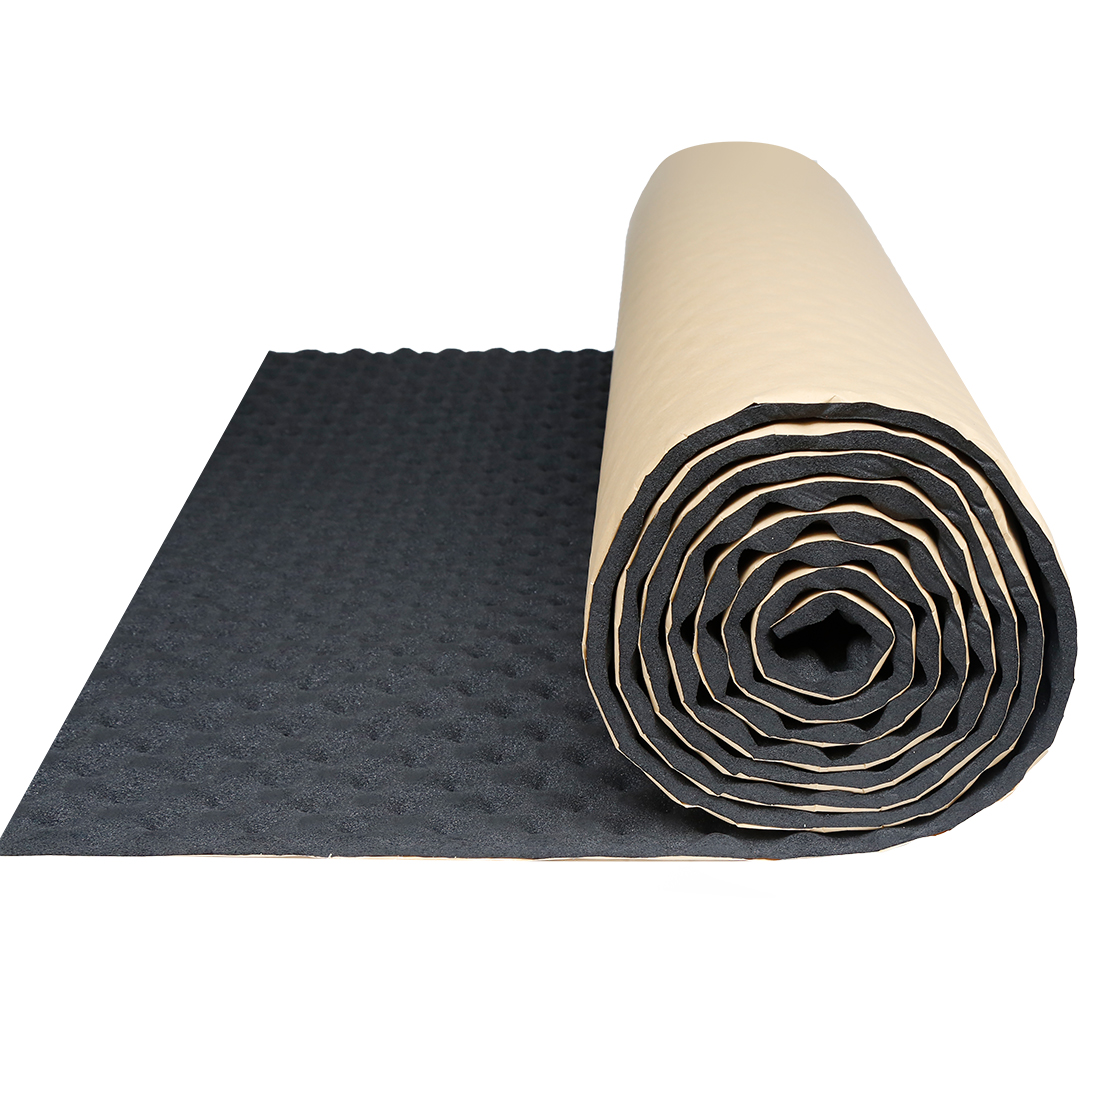 "Studio Sound Acoustic Absorption Car Heatproof Foam Deadener 19.7""x118"" 16sqft"